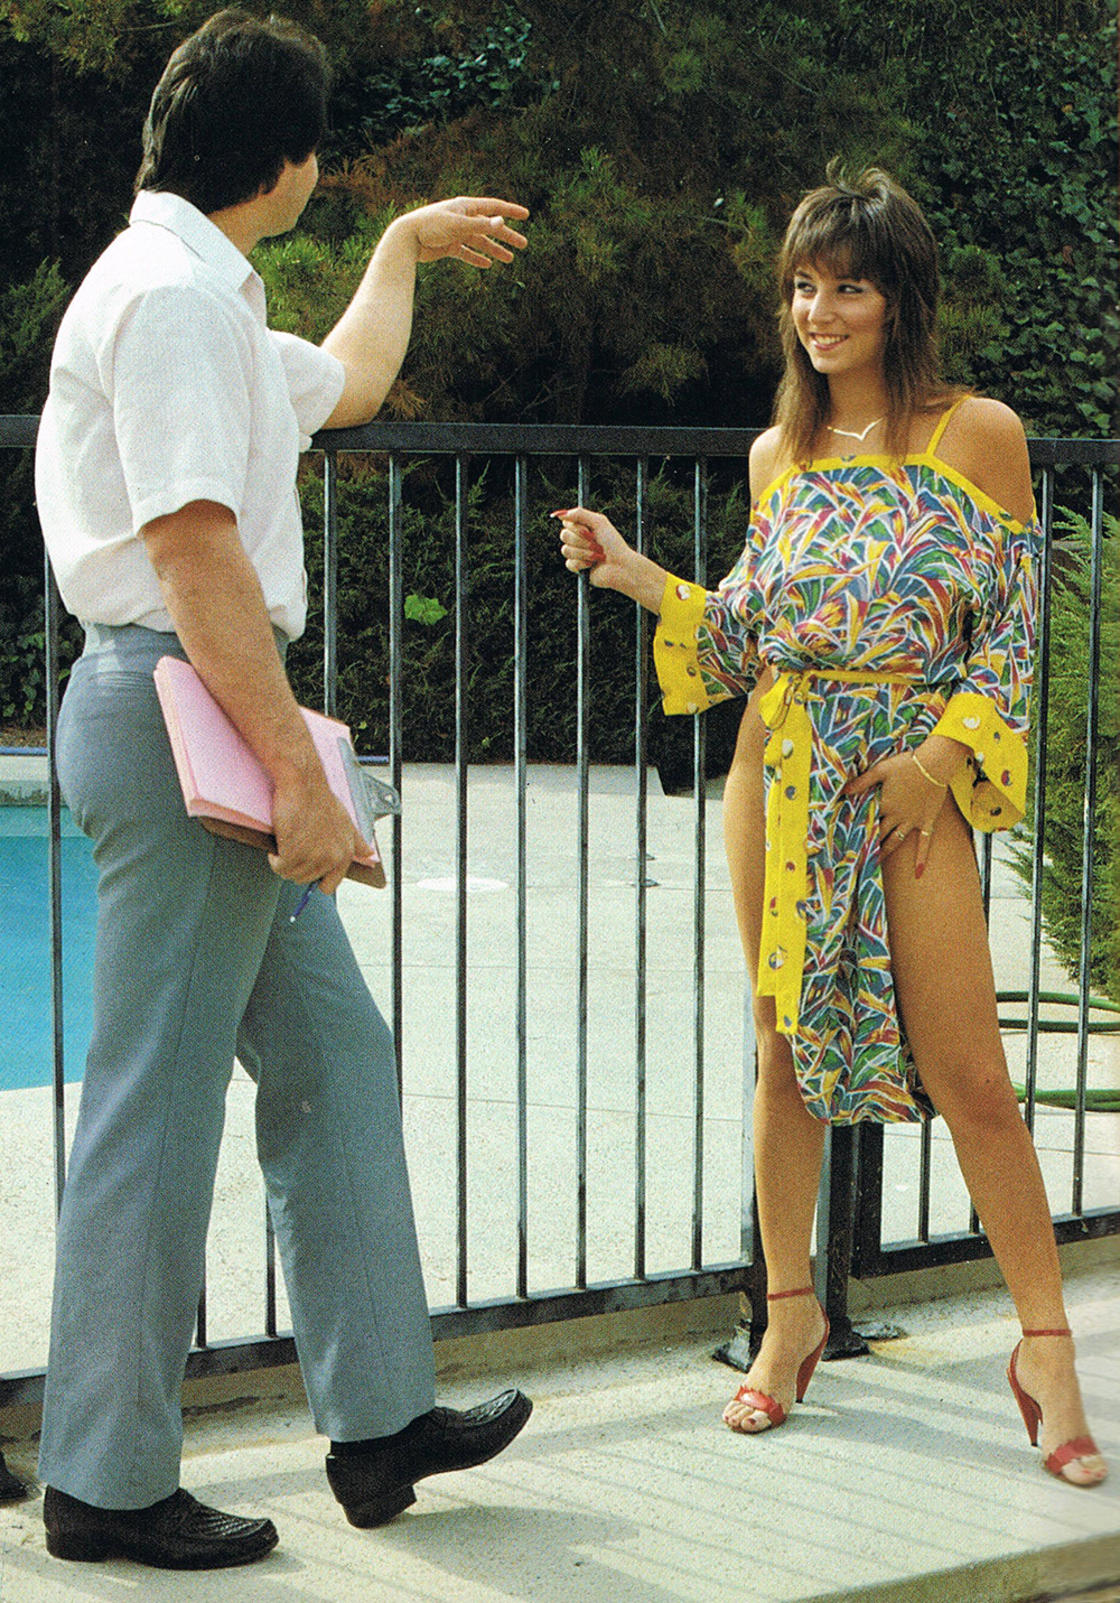 1980s-porn-fashion.jpg